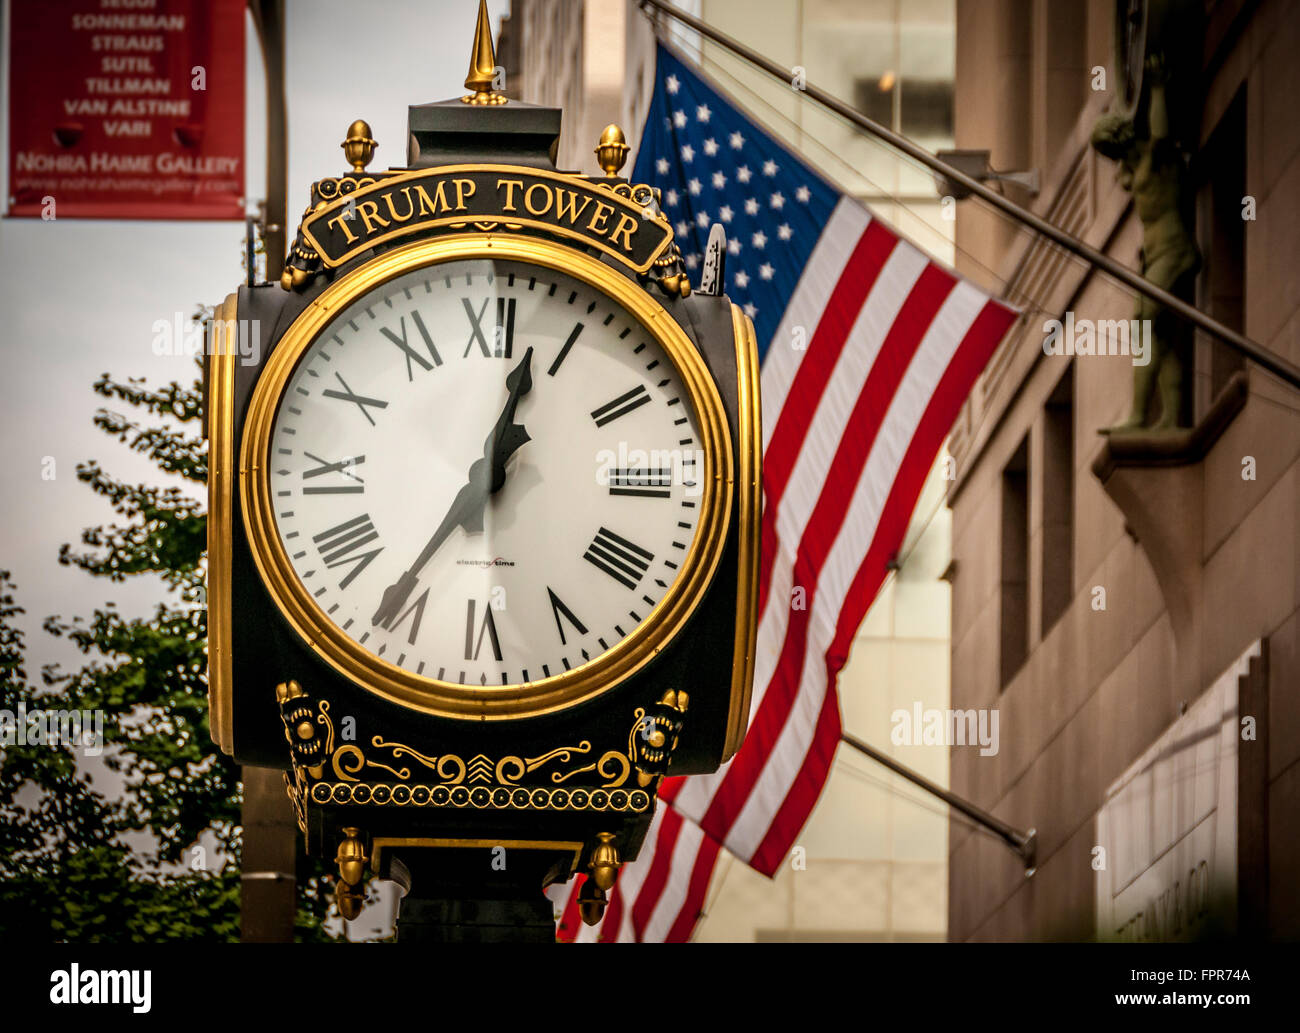 Clock outside Trump Tower, 5th Avenue, New York, USA. - Stock Image